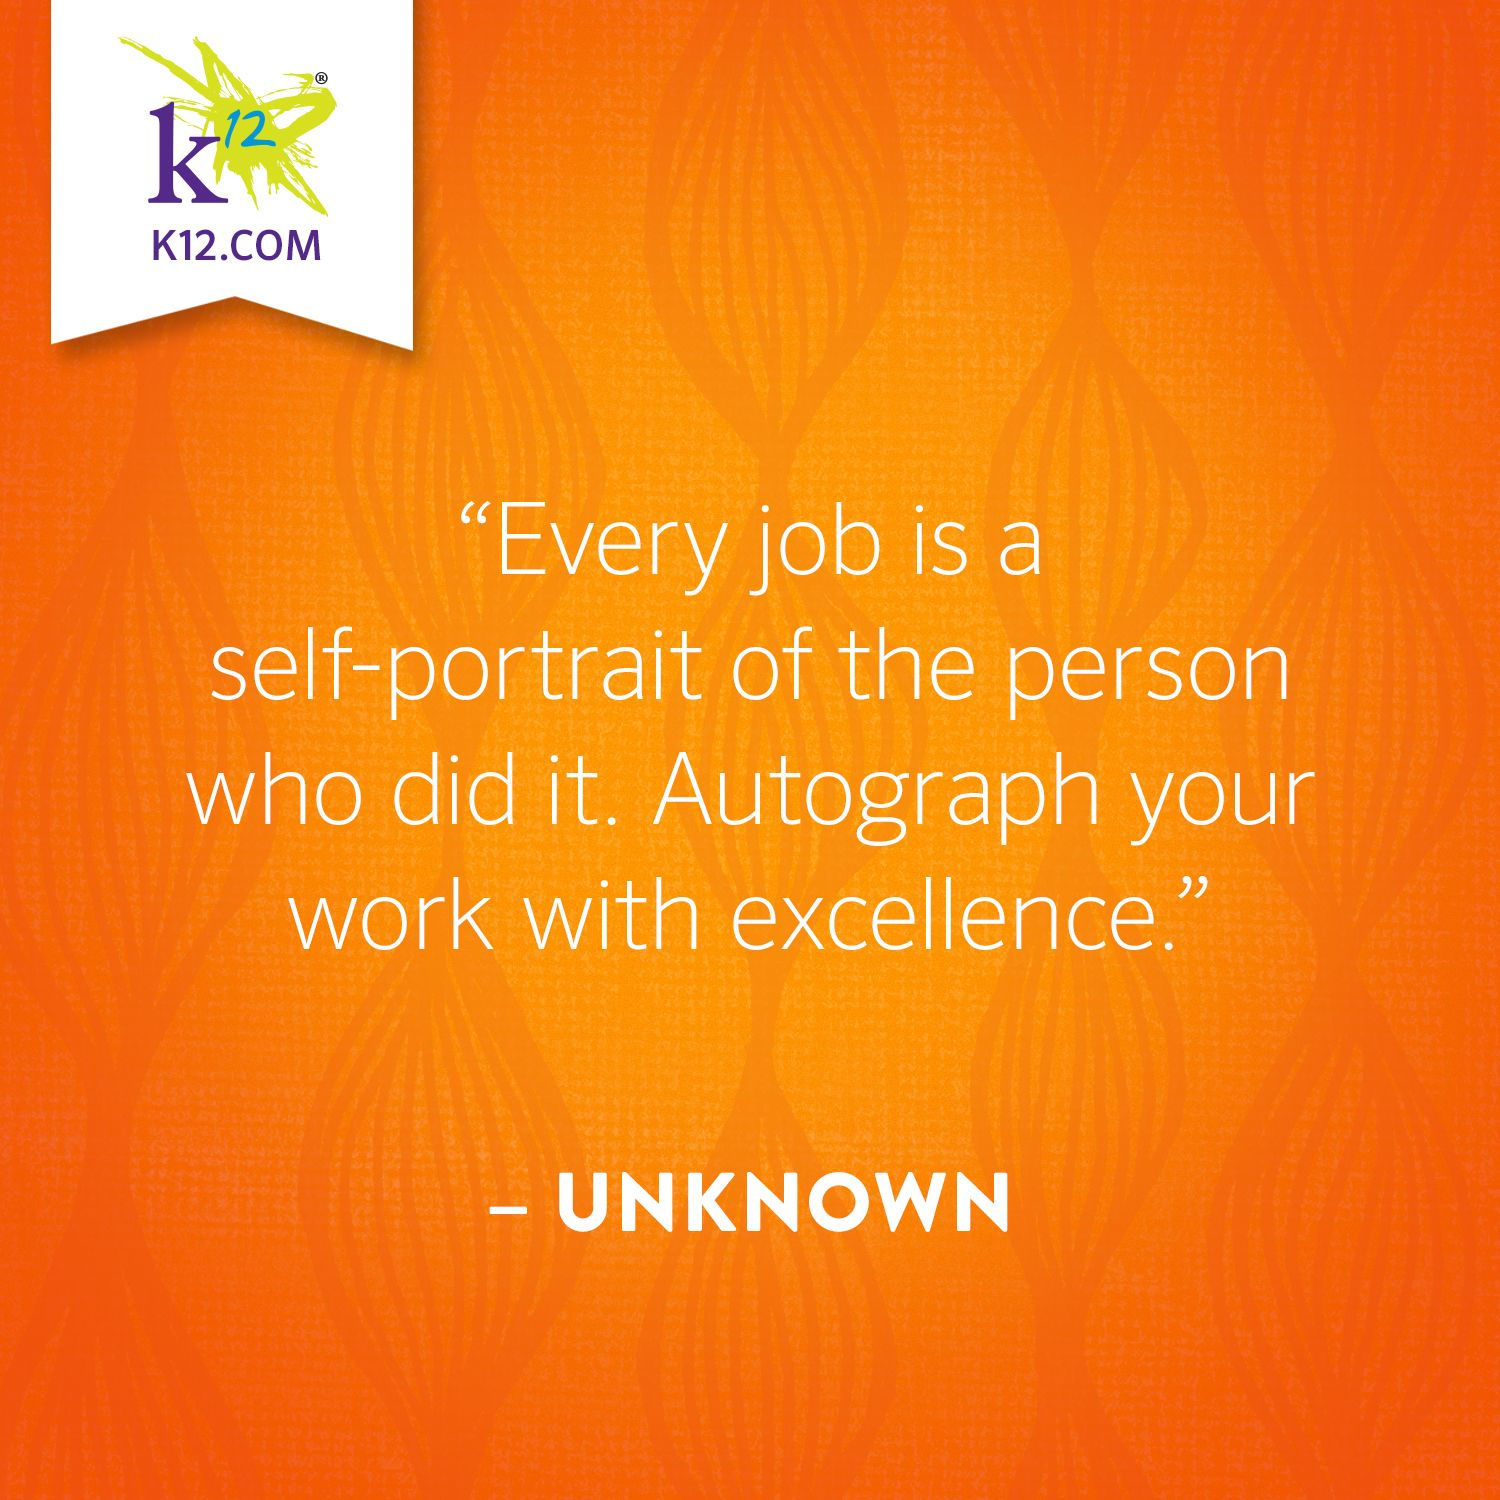 Autograph Your Work With Excellence Education Quotes Classroom